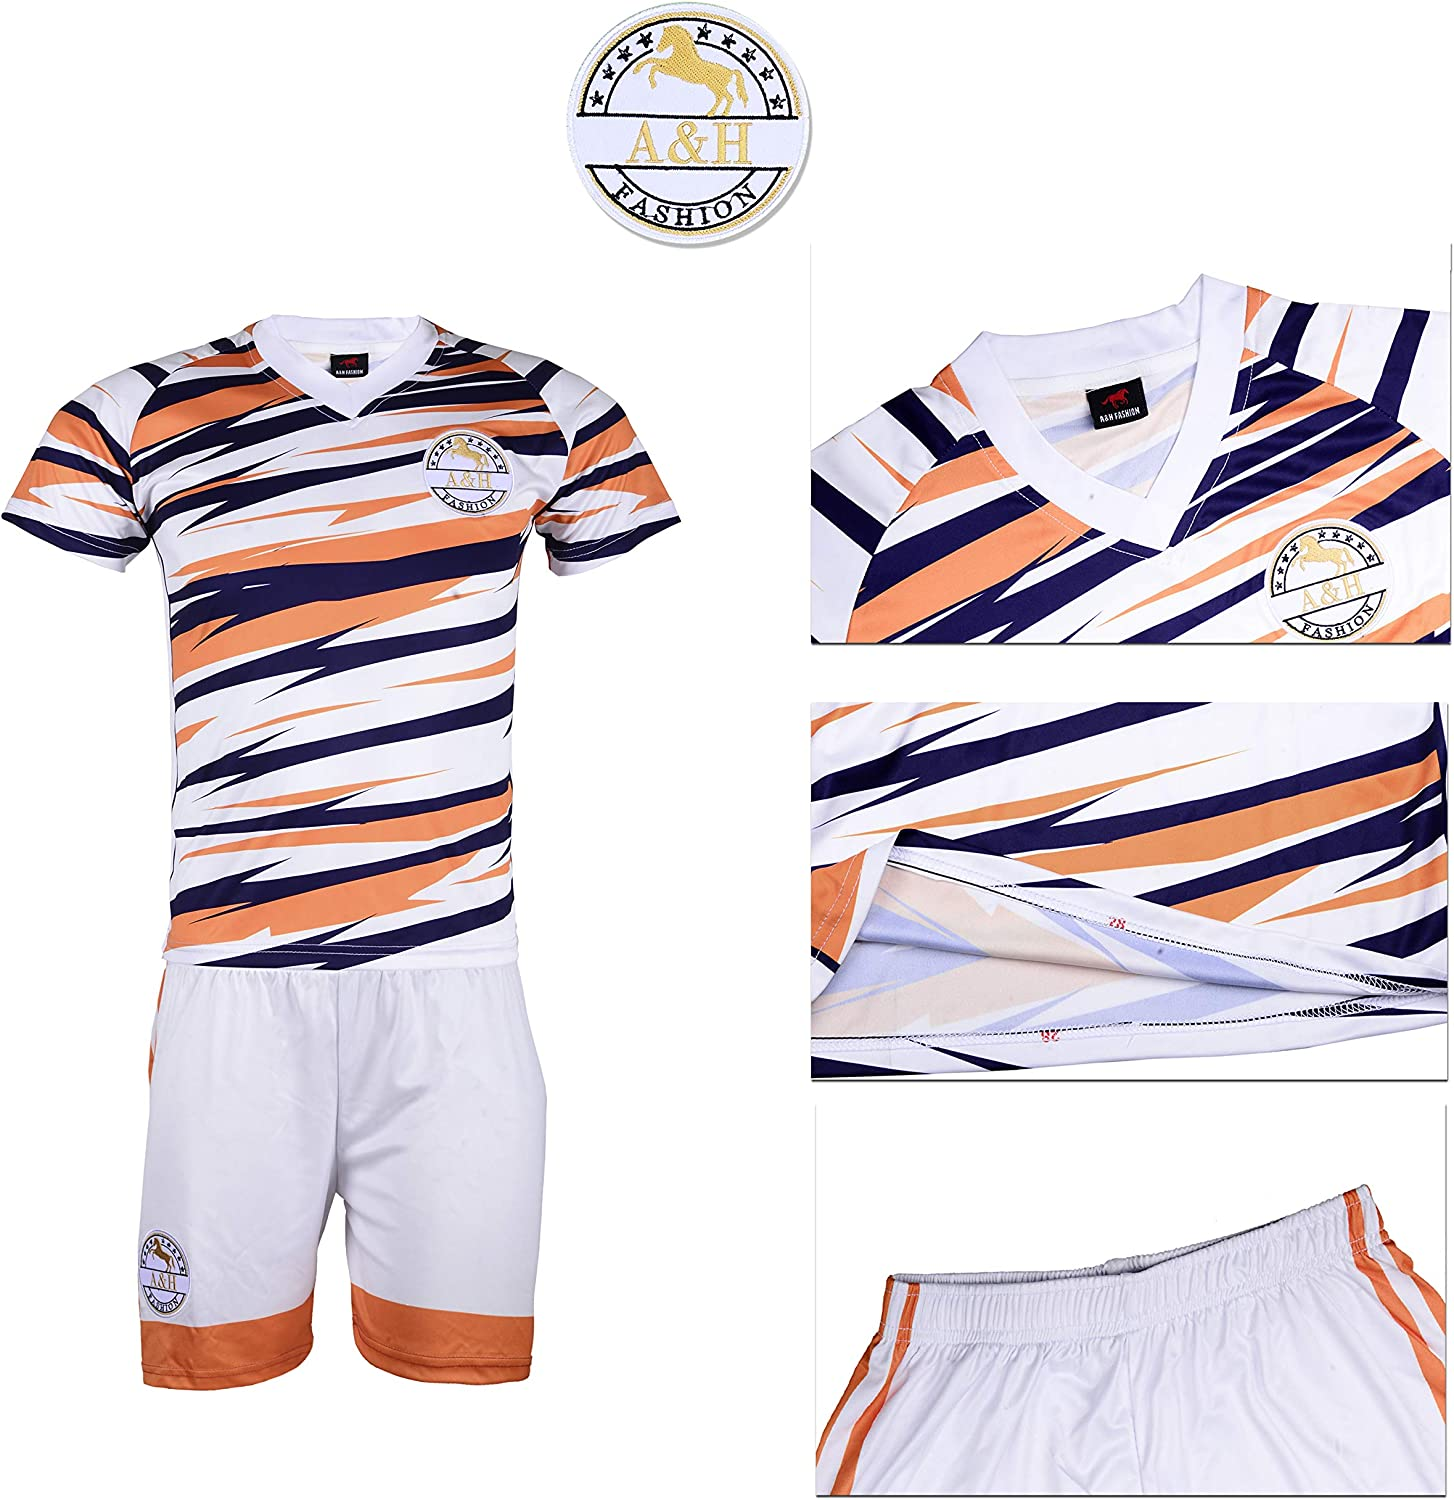 A/&H Fashion Boys Kids Football Soccer Jersey Kit Sportswear Orange White ZigZag TShirt Shorts